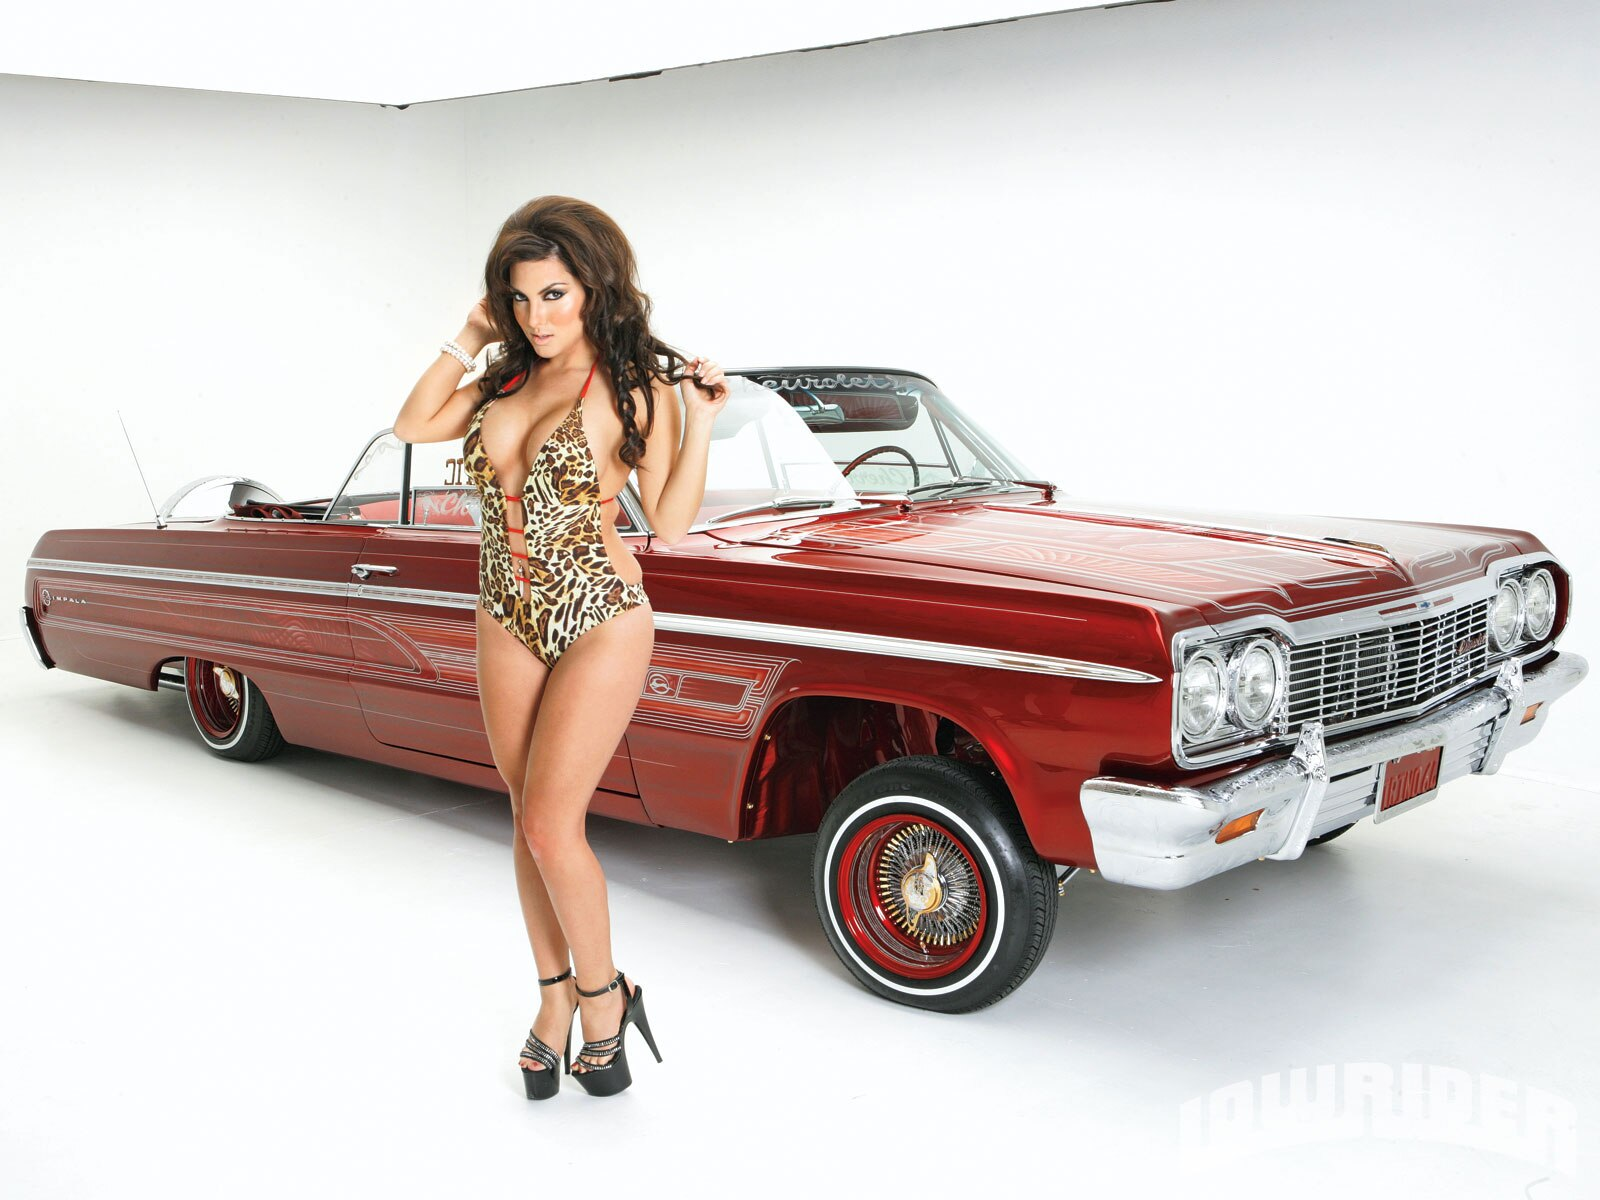 1105-lrms-04-o-mary-cherry-lowrider-girls-model-2